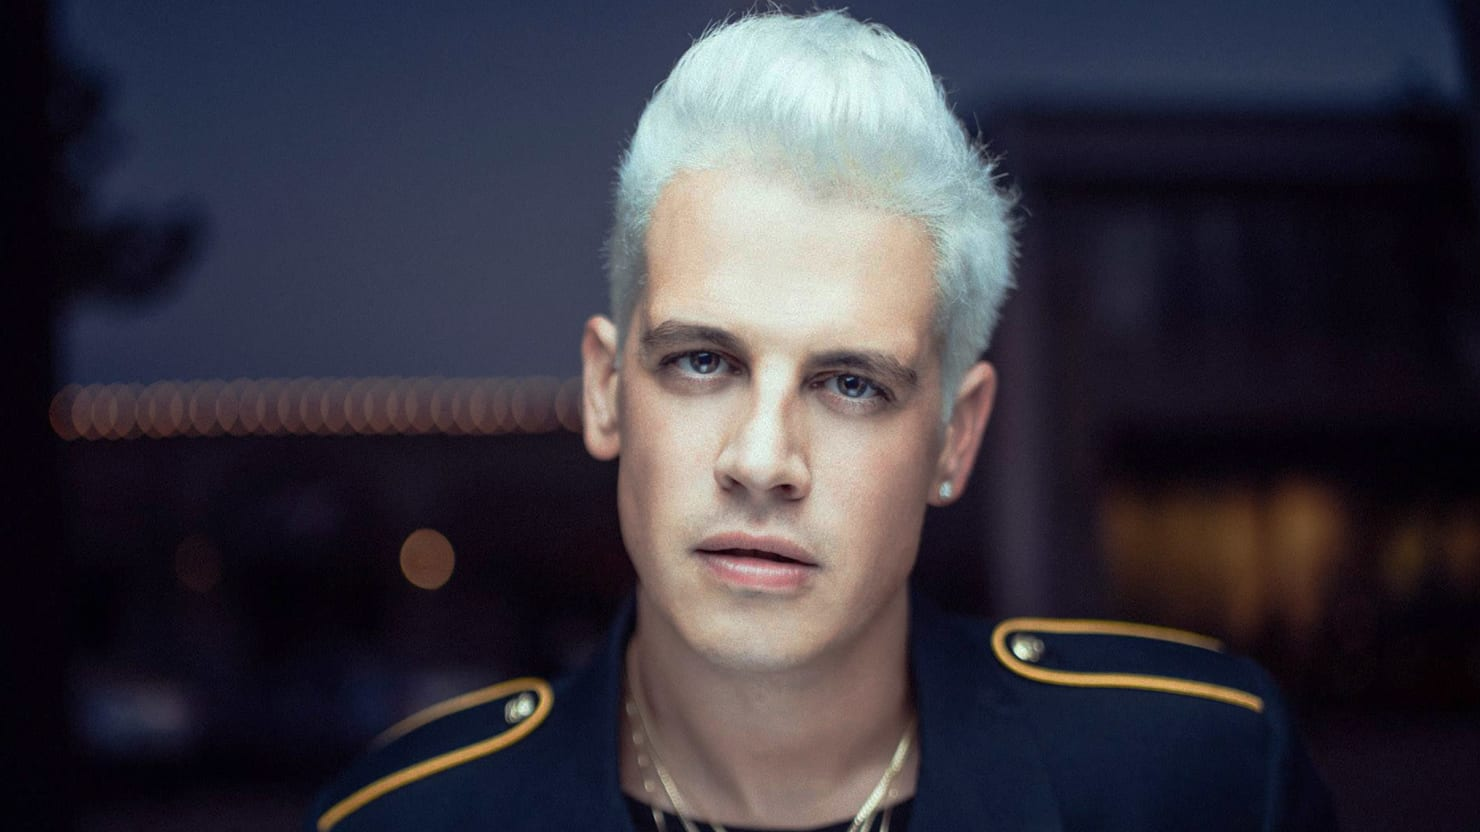 Hairstyle Editor For Men Breitbart Editor Milo Yiannopoulos Takes 100000 For Charity